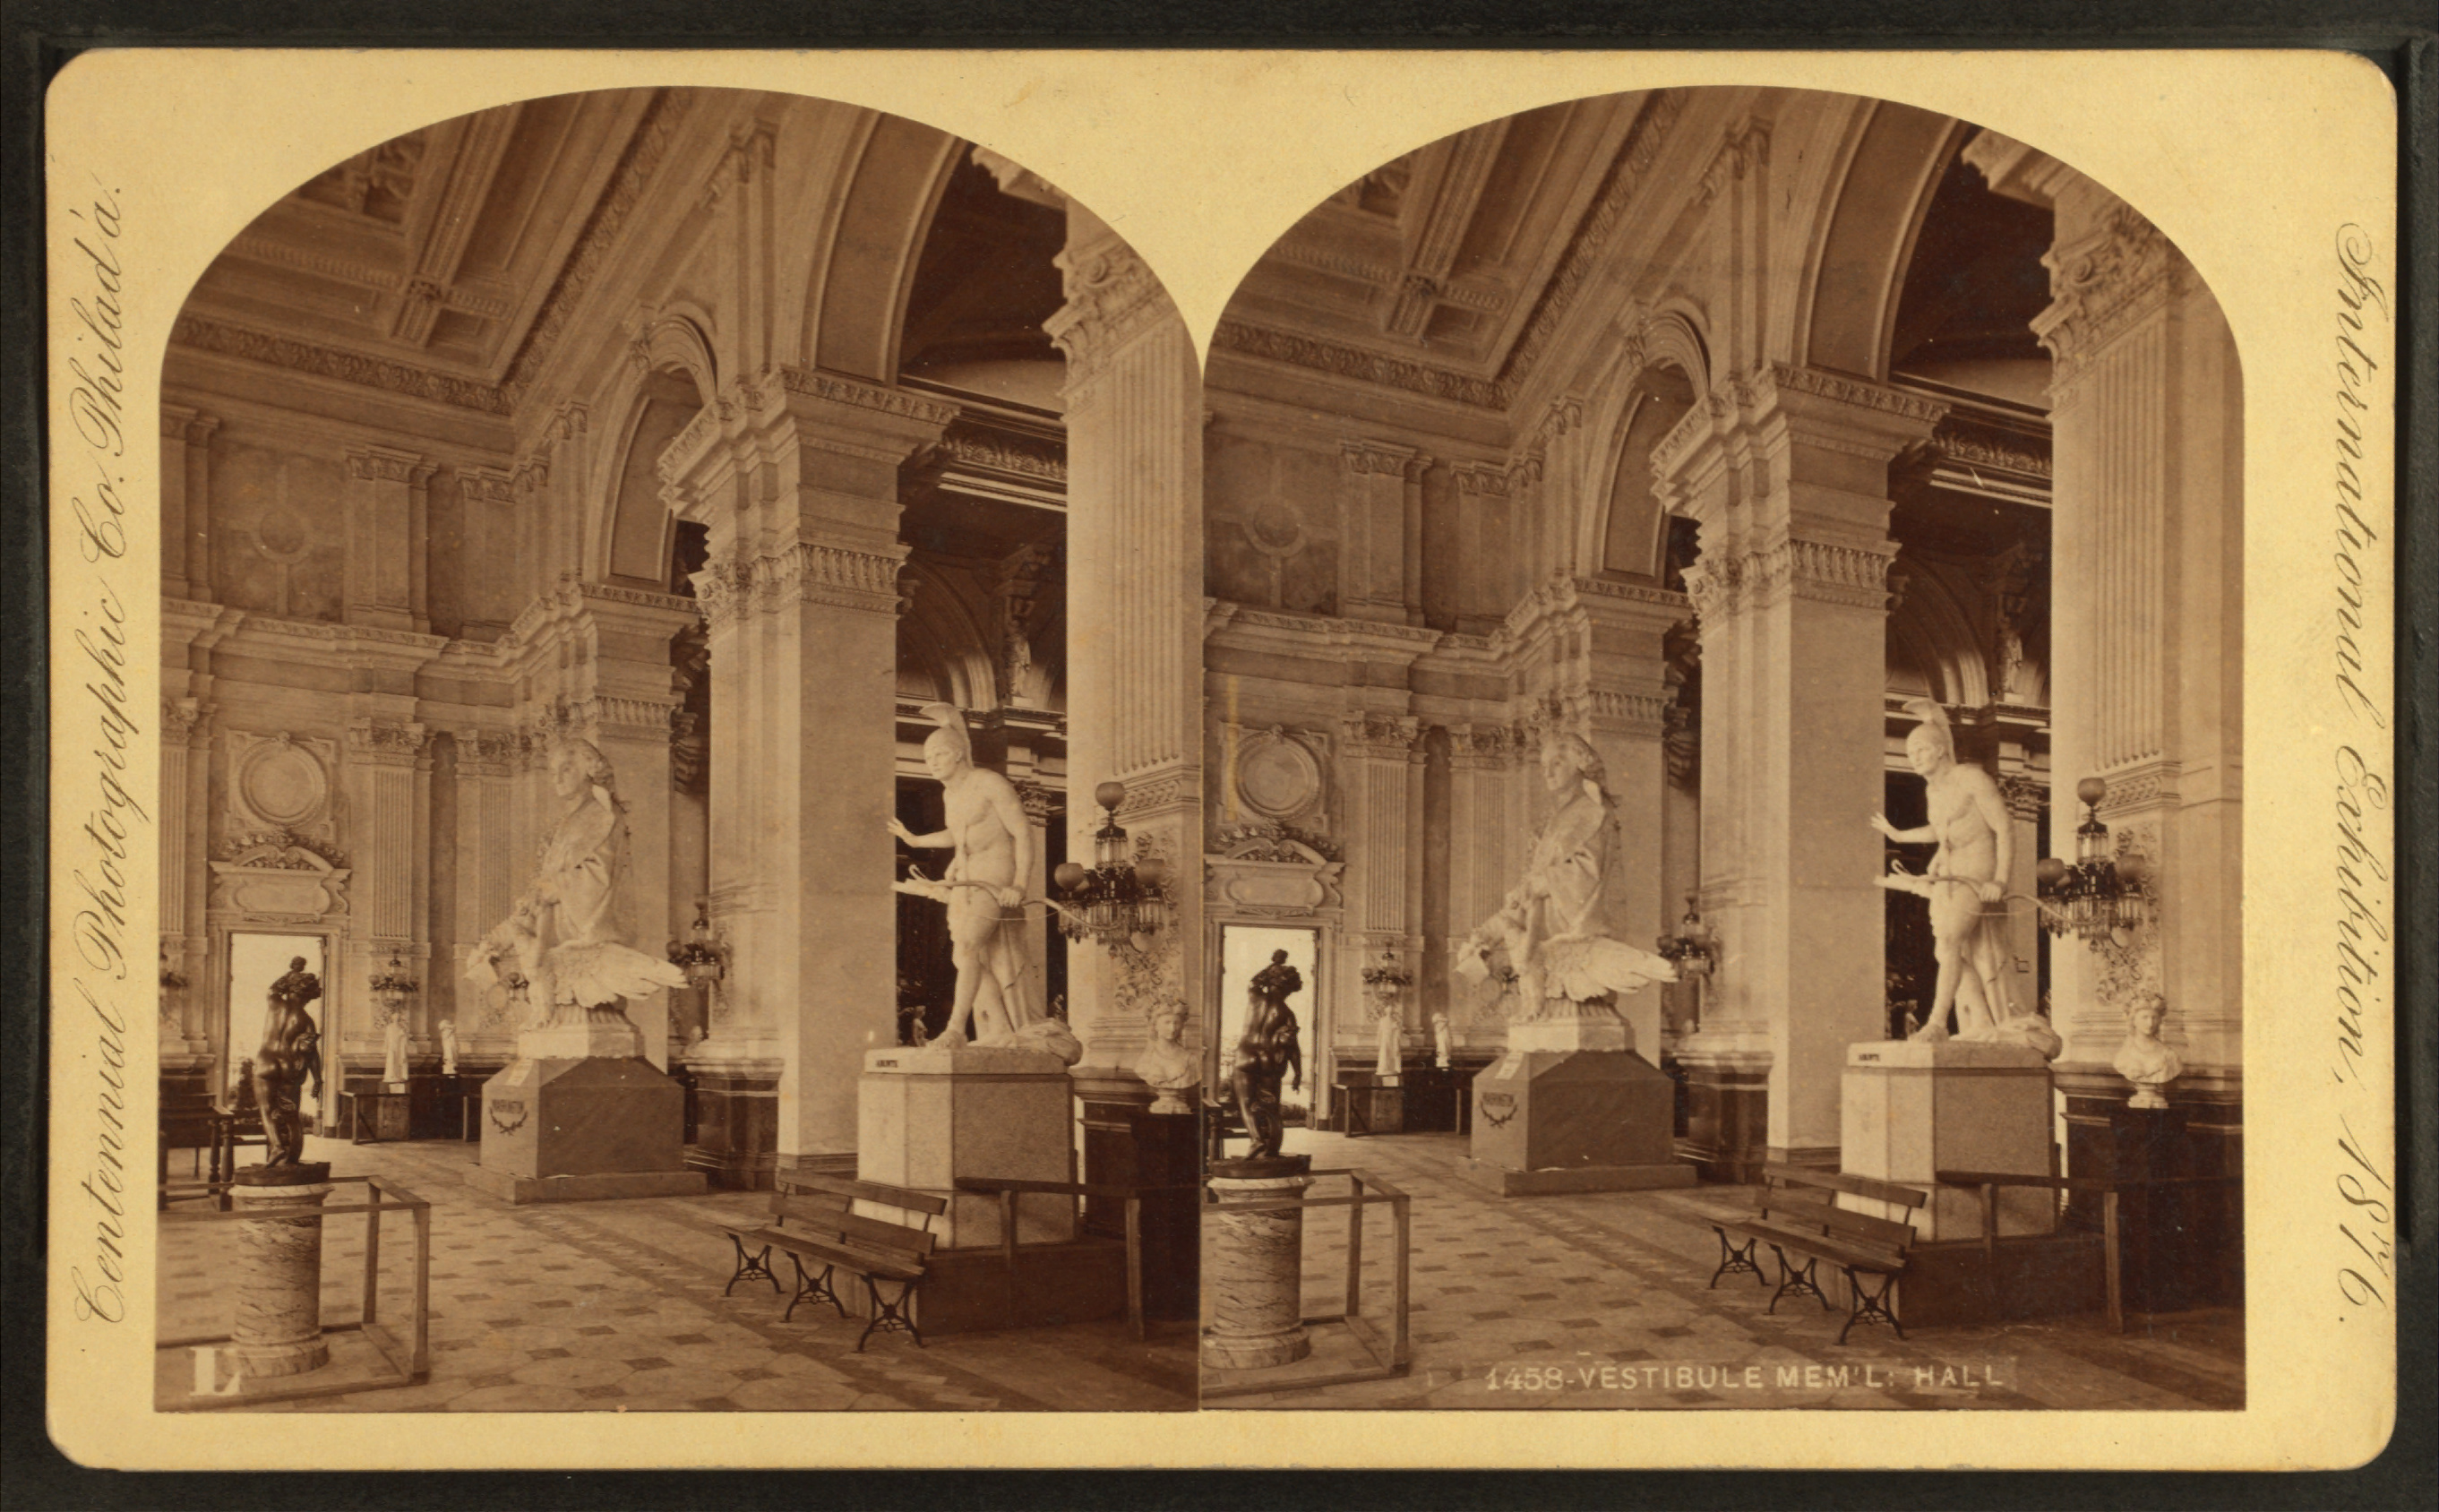 Vestibule Memorial Hall By Centennial Photographic Co How To Reduce Size Of